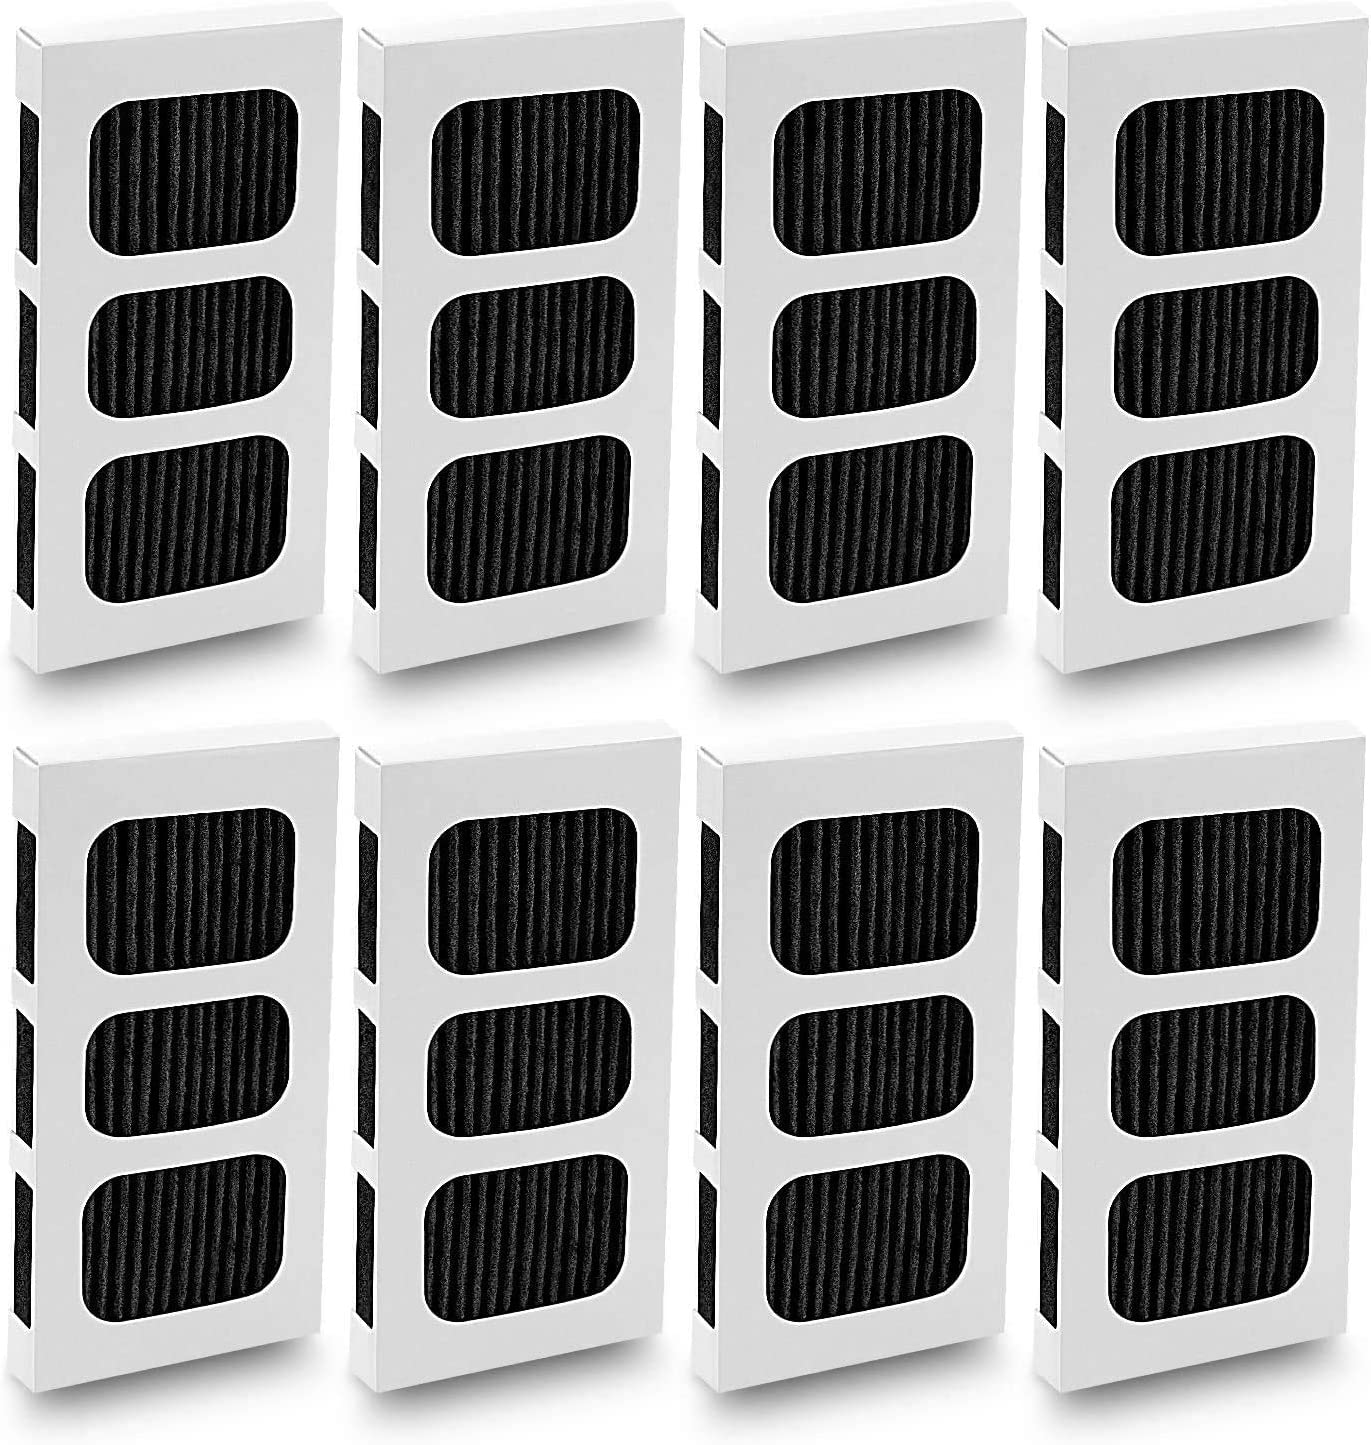 LINNIW 8 Pack Paultra2 Refrigerator Air Filter Replacement, Compatible with Pureair Ultra 2, Pureair Ultra ii, Electrolux 5303918847 242047805 EAP12364179